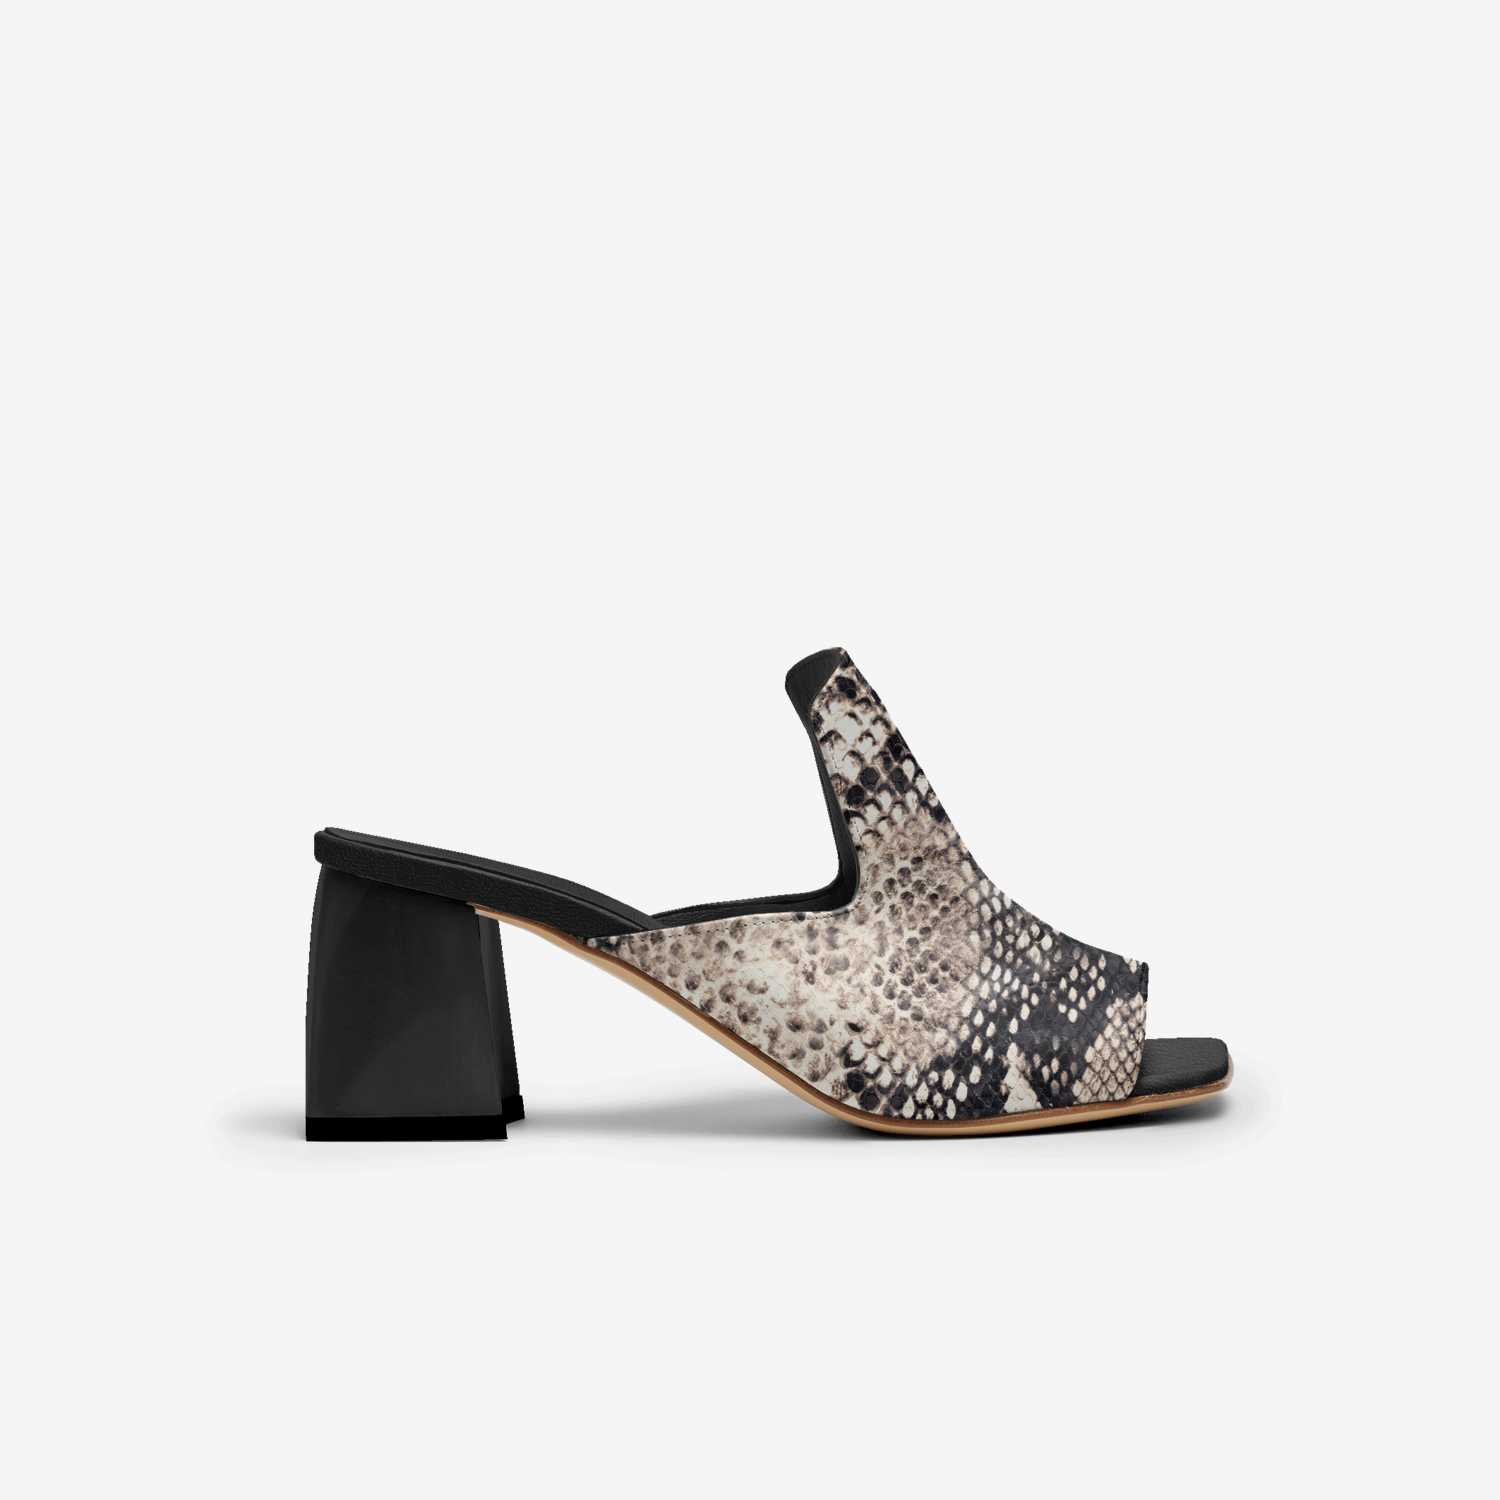 Leonda custom made in Italy shoes by Calvina Morris | Side view